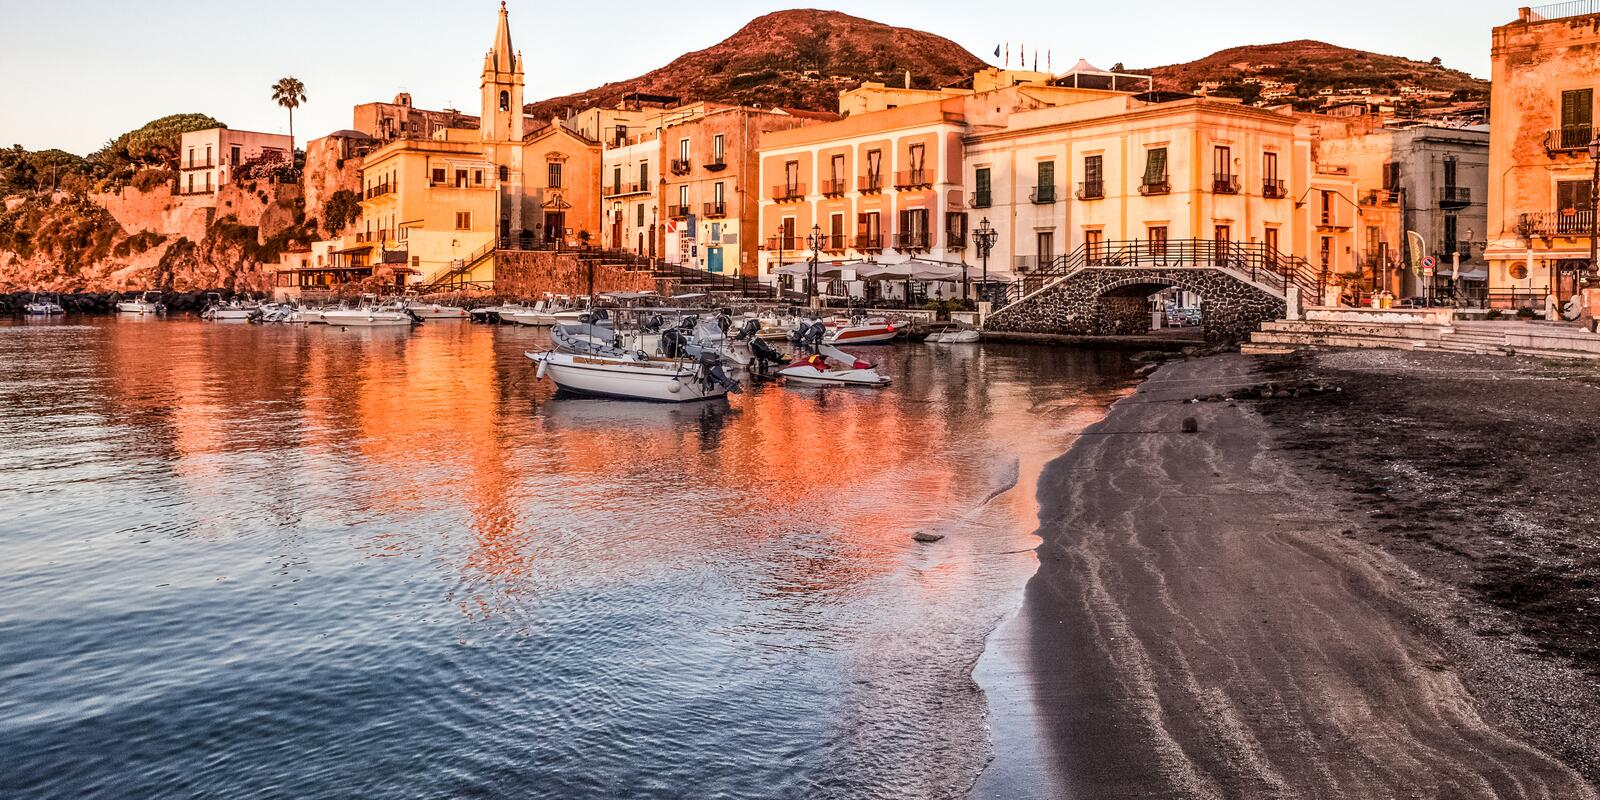 To the Aeolian islands between history, culture and traditions